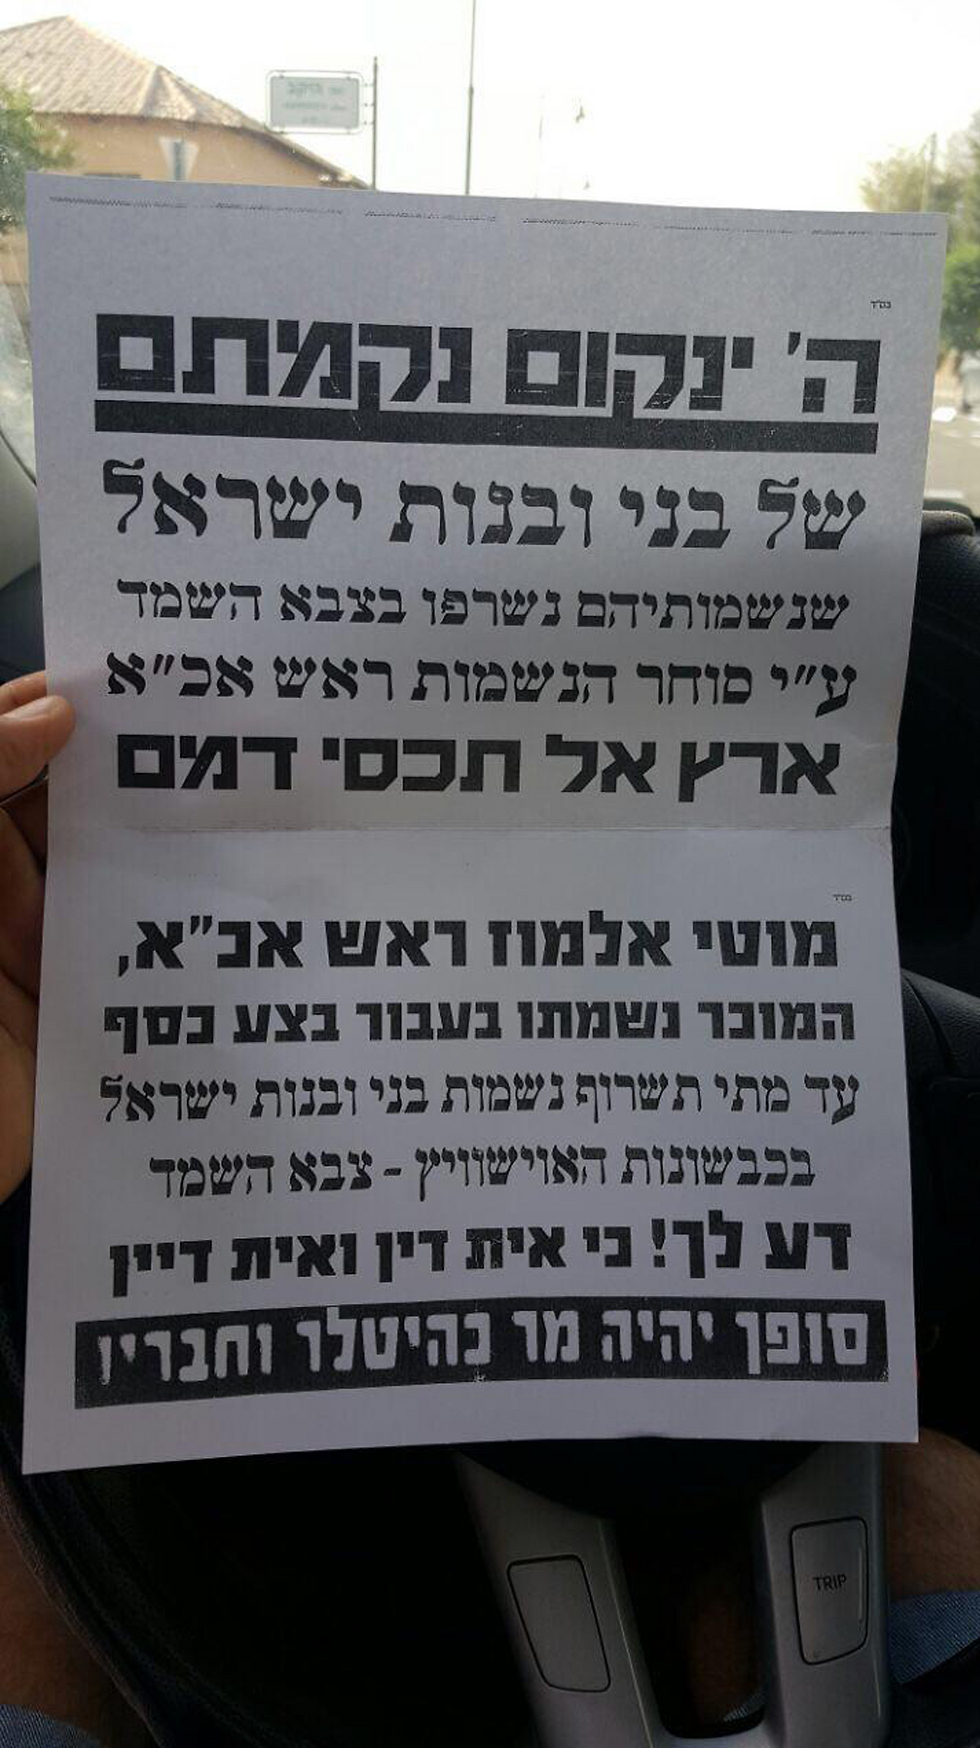 leaflet reads 'Your end will be bitter like Hitler's and his friends.'